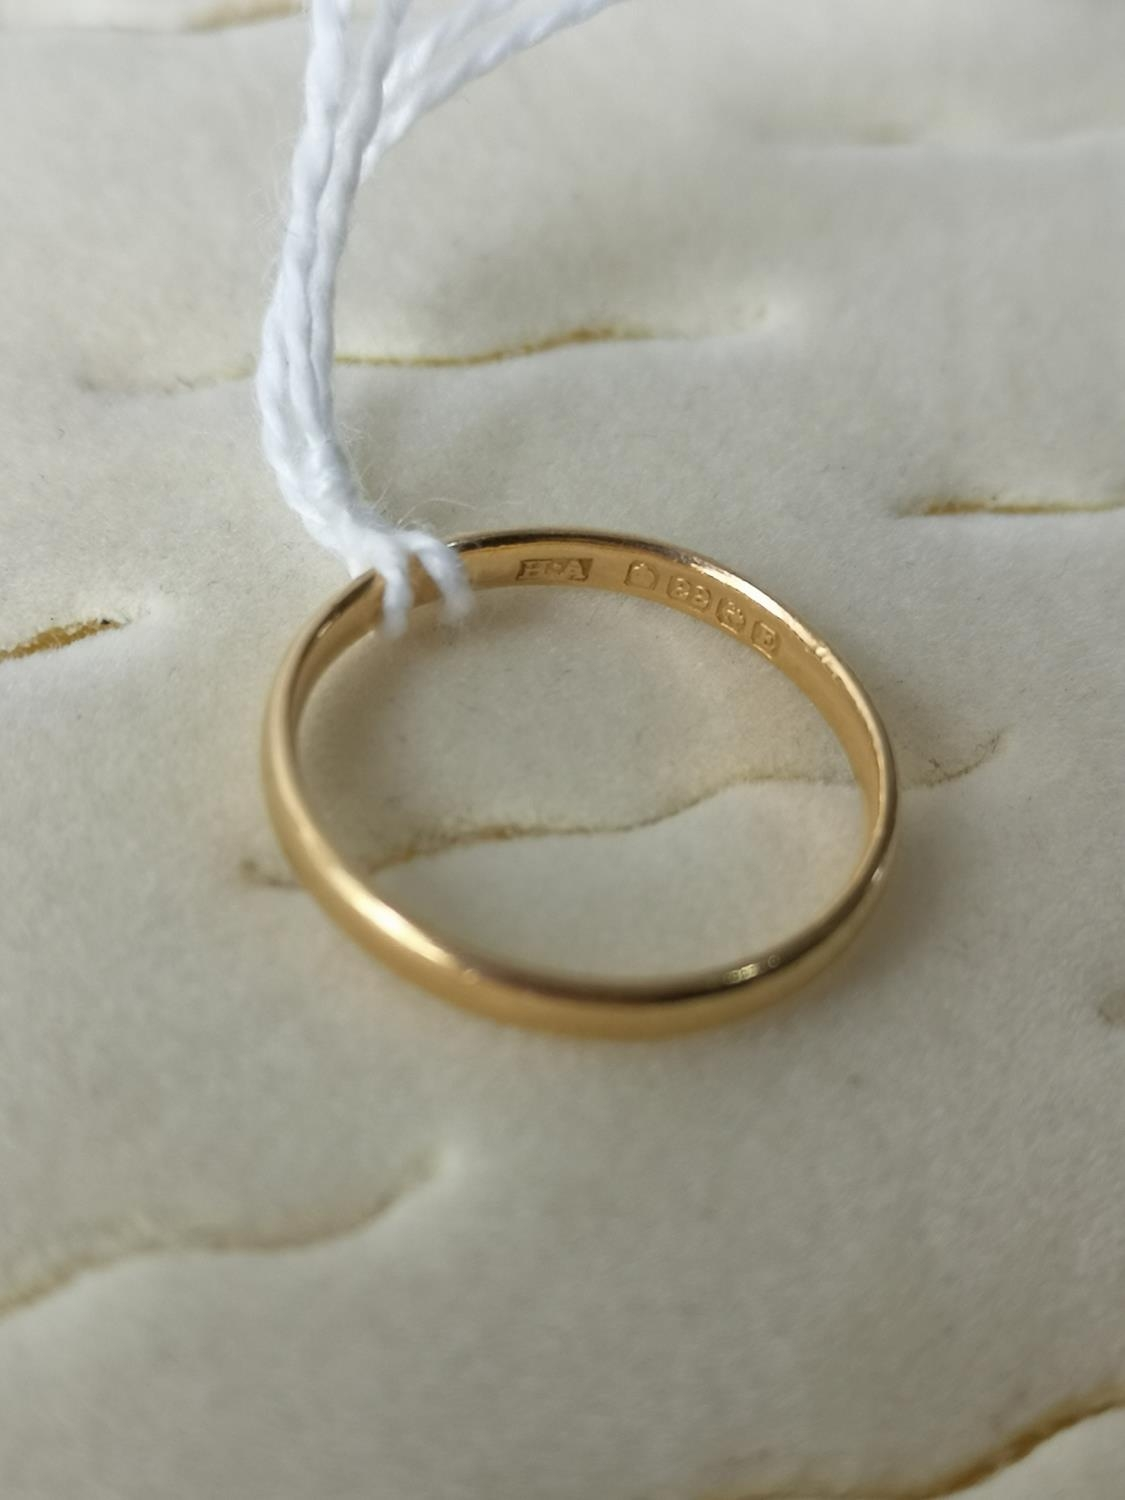 A 22ct gold wedding band [Ring size N] [2.33Grams]